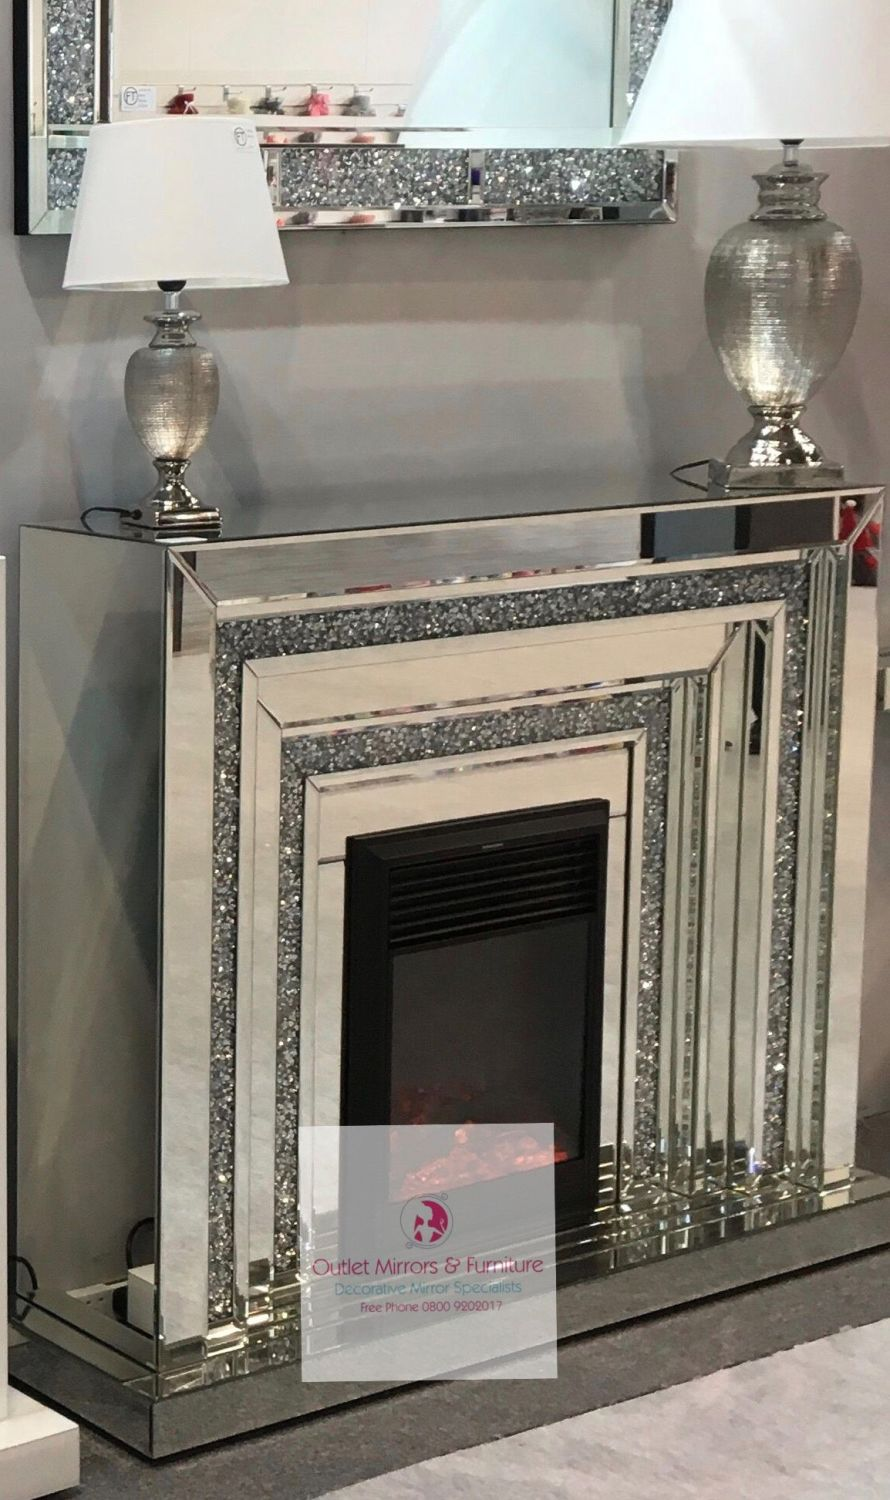 Diamond Crush Sparkle Mirrored Levels fire surround with electric fire in